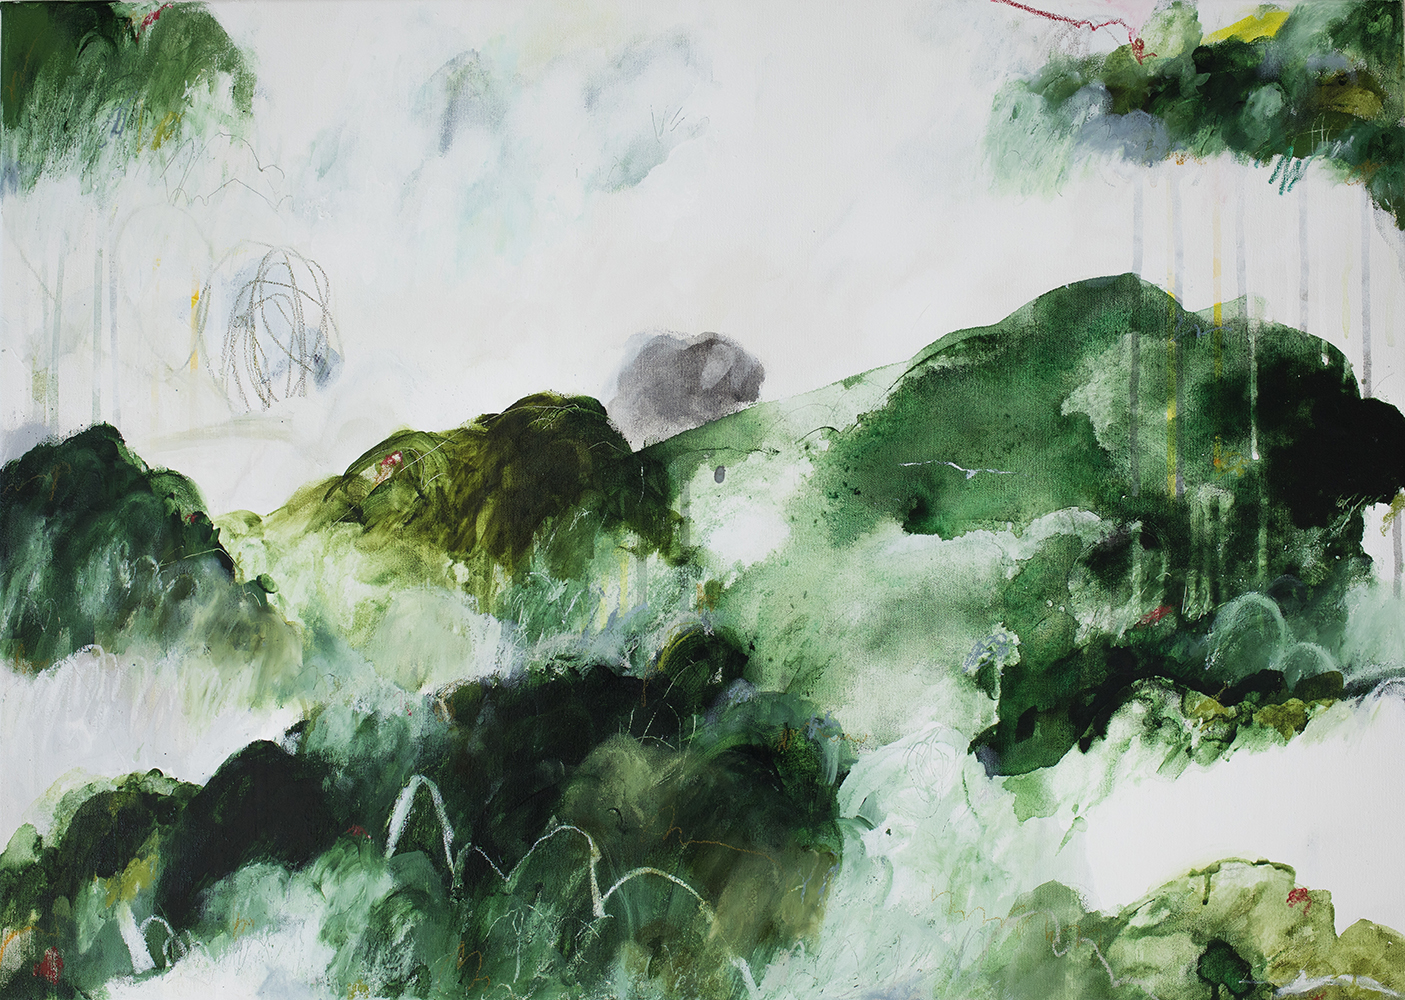 Inge Flinte, Rising Ground , 2018, acrylic, oil pastel, and pencil on canvas, 50 x 70cm | Courtesy of the artist.